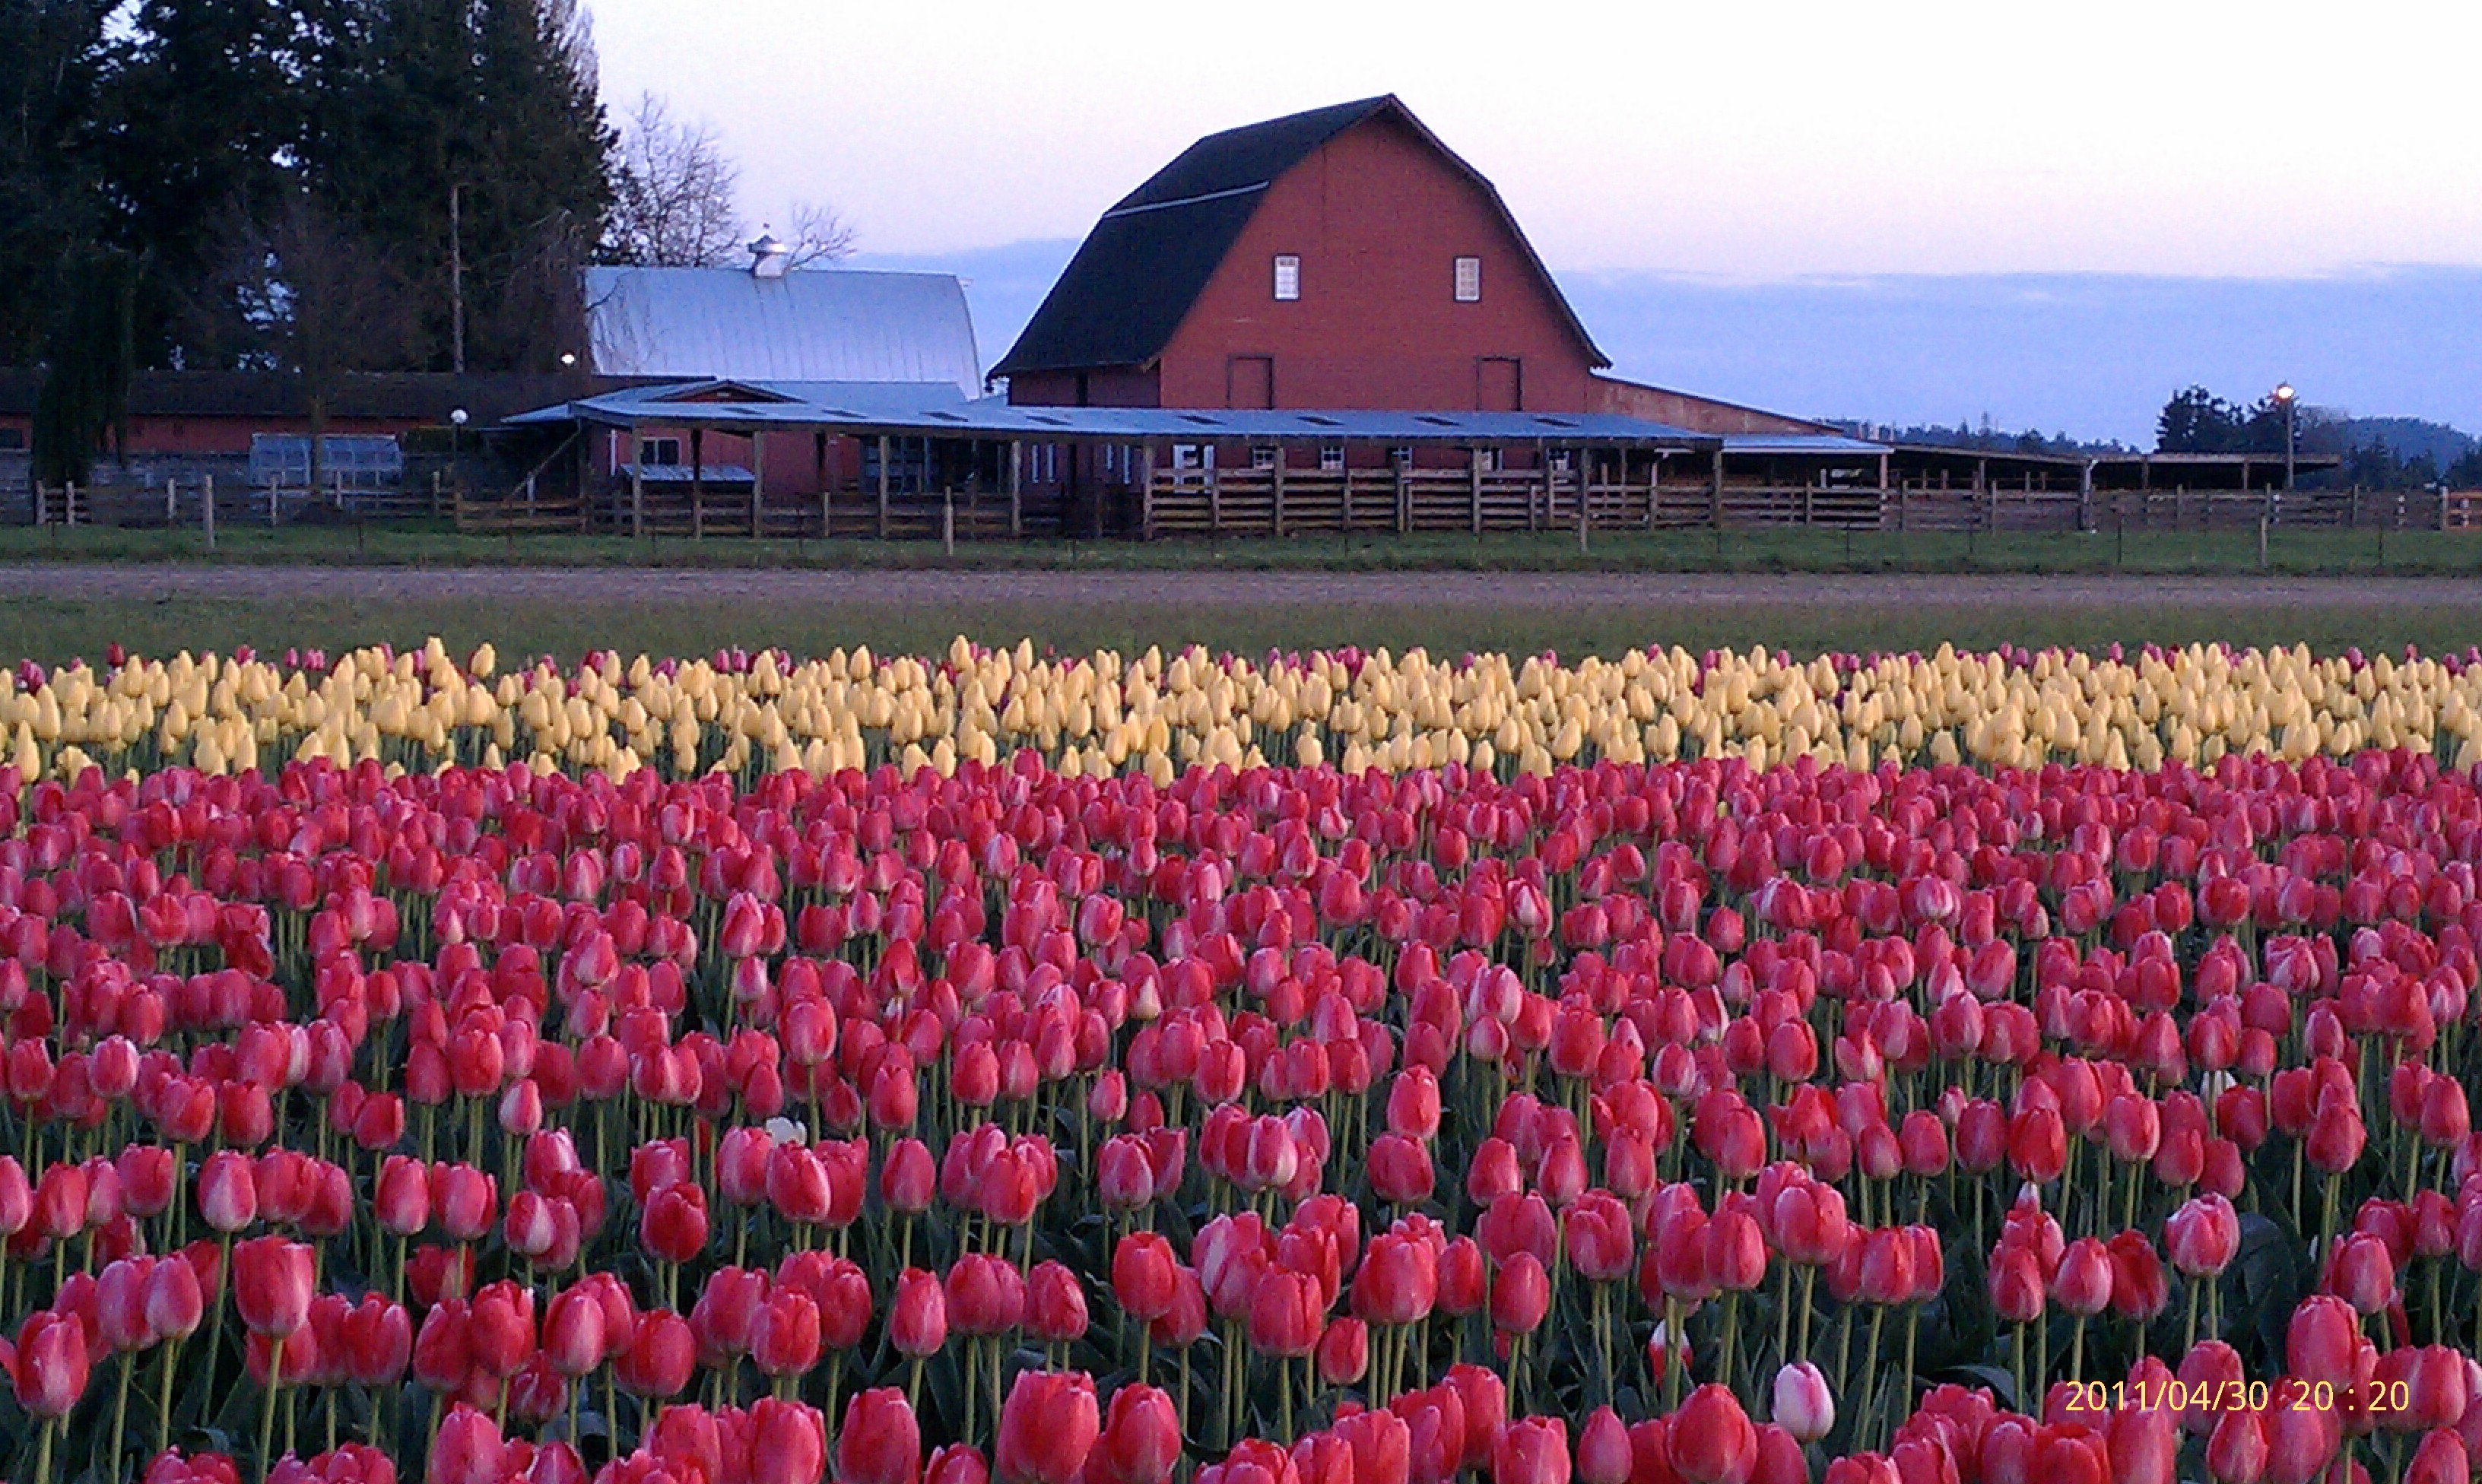 Picture of may flowers image download Camera phone challenge: May flowers - TechRepublic image download